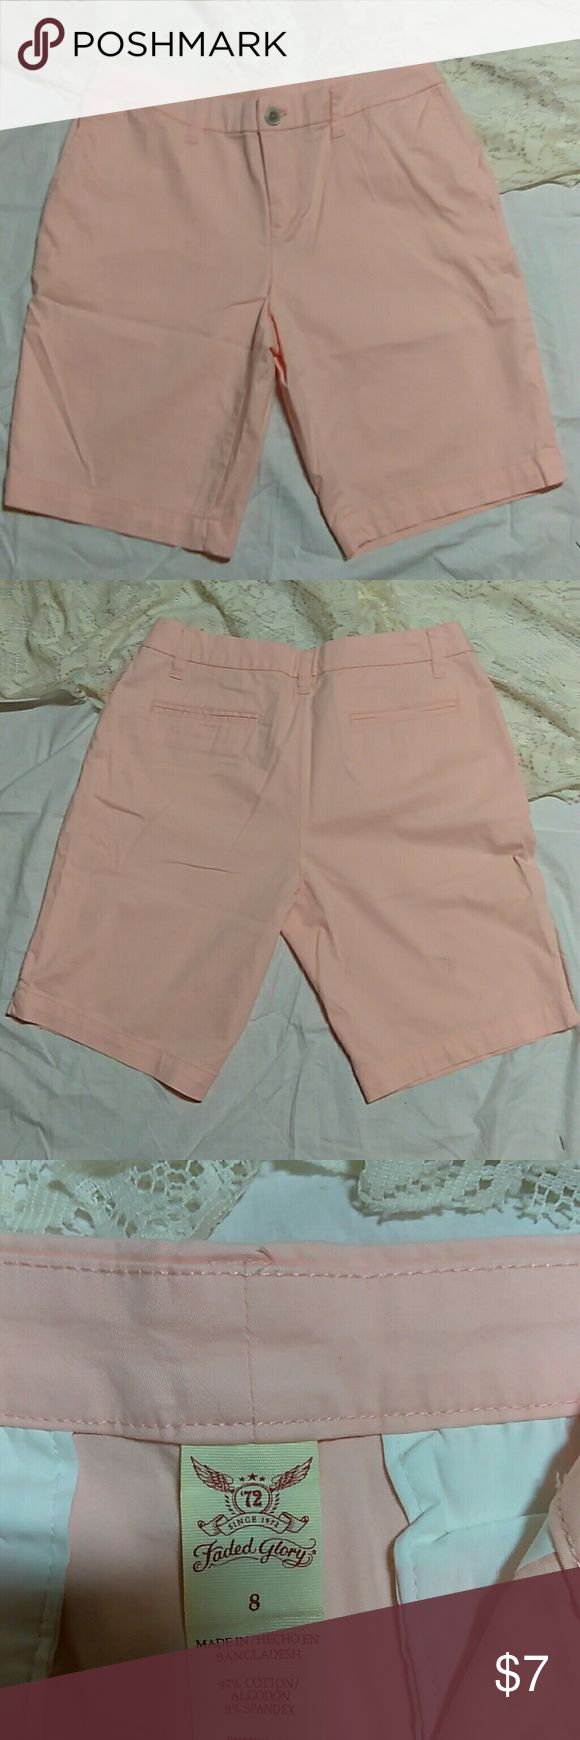 """Faded Glory brushed denim pastel peach shorts sz 8 Faded Glory women's brushed denim pastel peach shorts size 8. Very soft and pretty pastel peach color. Two side hip pockets in front,two pockets on back. Longer in length 9 1/4 """" inseam. 97% cotton,3% spandex. NWOT. Can be worn as every day shorts or as going out,dress shorts. Shorts have some spandex so they move with you,making them comfortable all day long. Faded Glory Shorts Bermudas"""